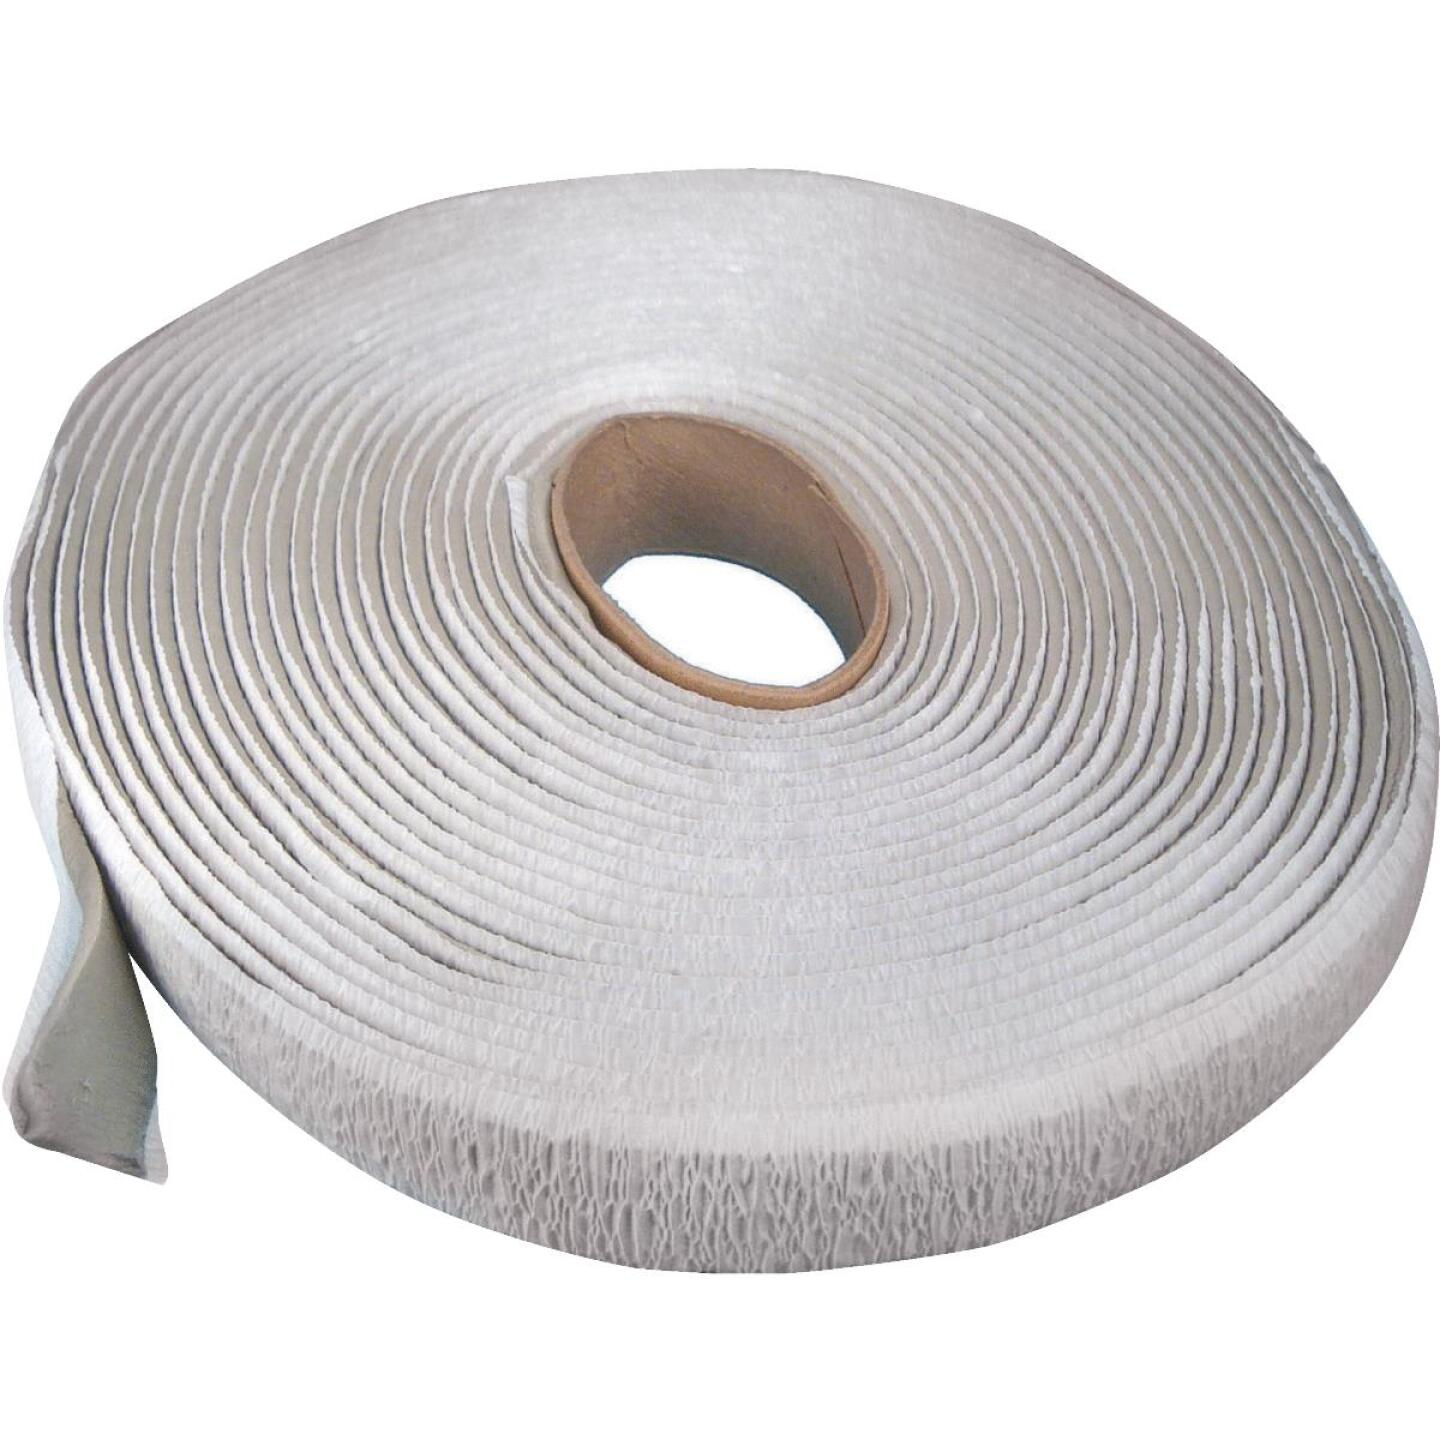 United States Hardware1/8 In. x 1 In. x 30 Ft. Putty Tape Image 1